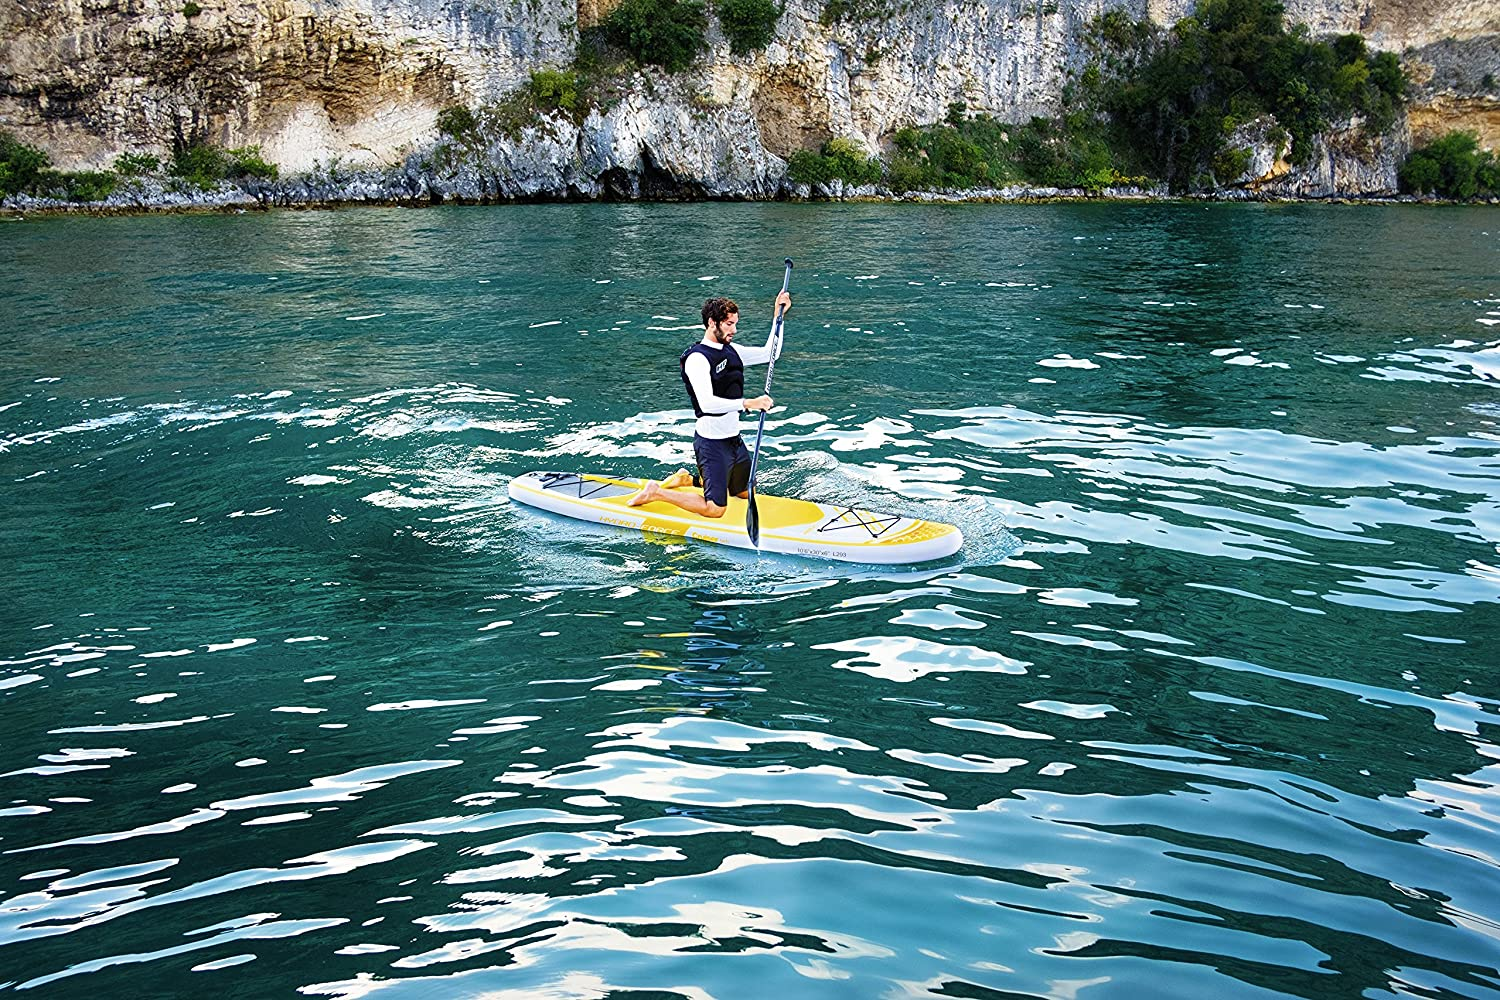 Amazon.com : Bestway Hydro-Force Cruiser Tech Inflatable Stand Up Paddle Board, 106